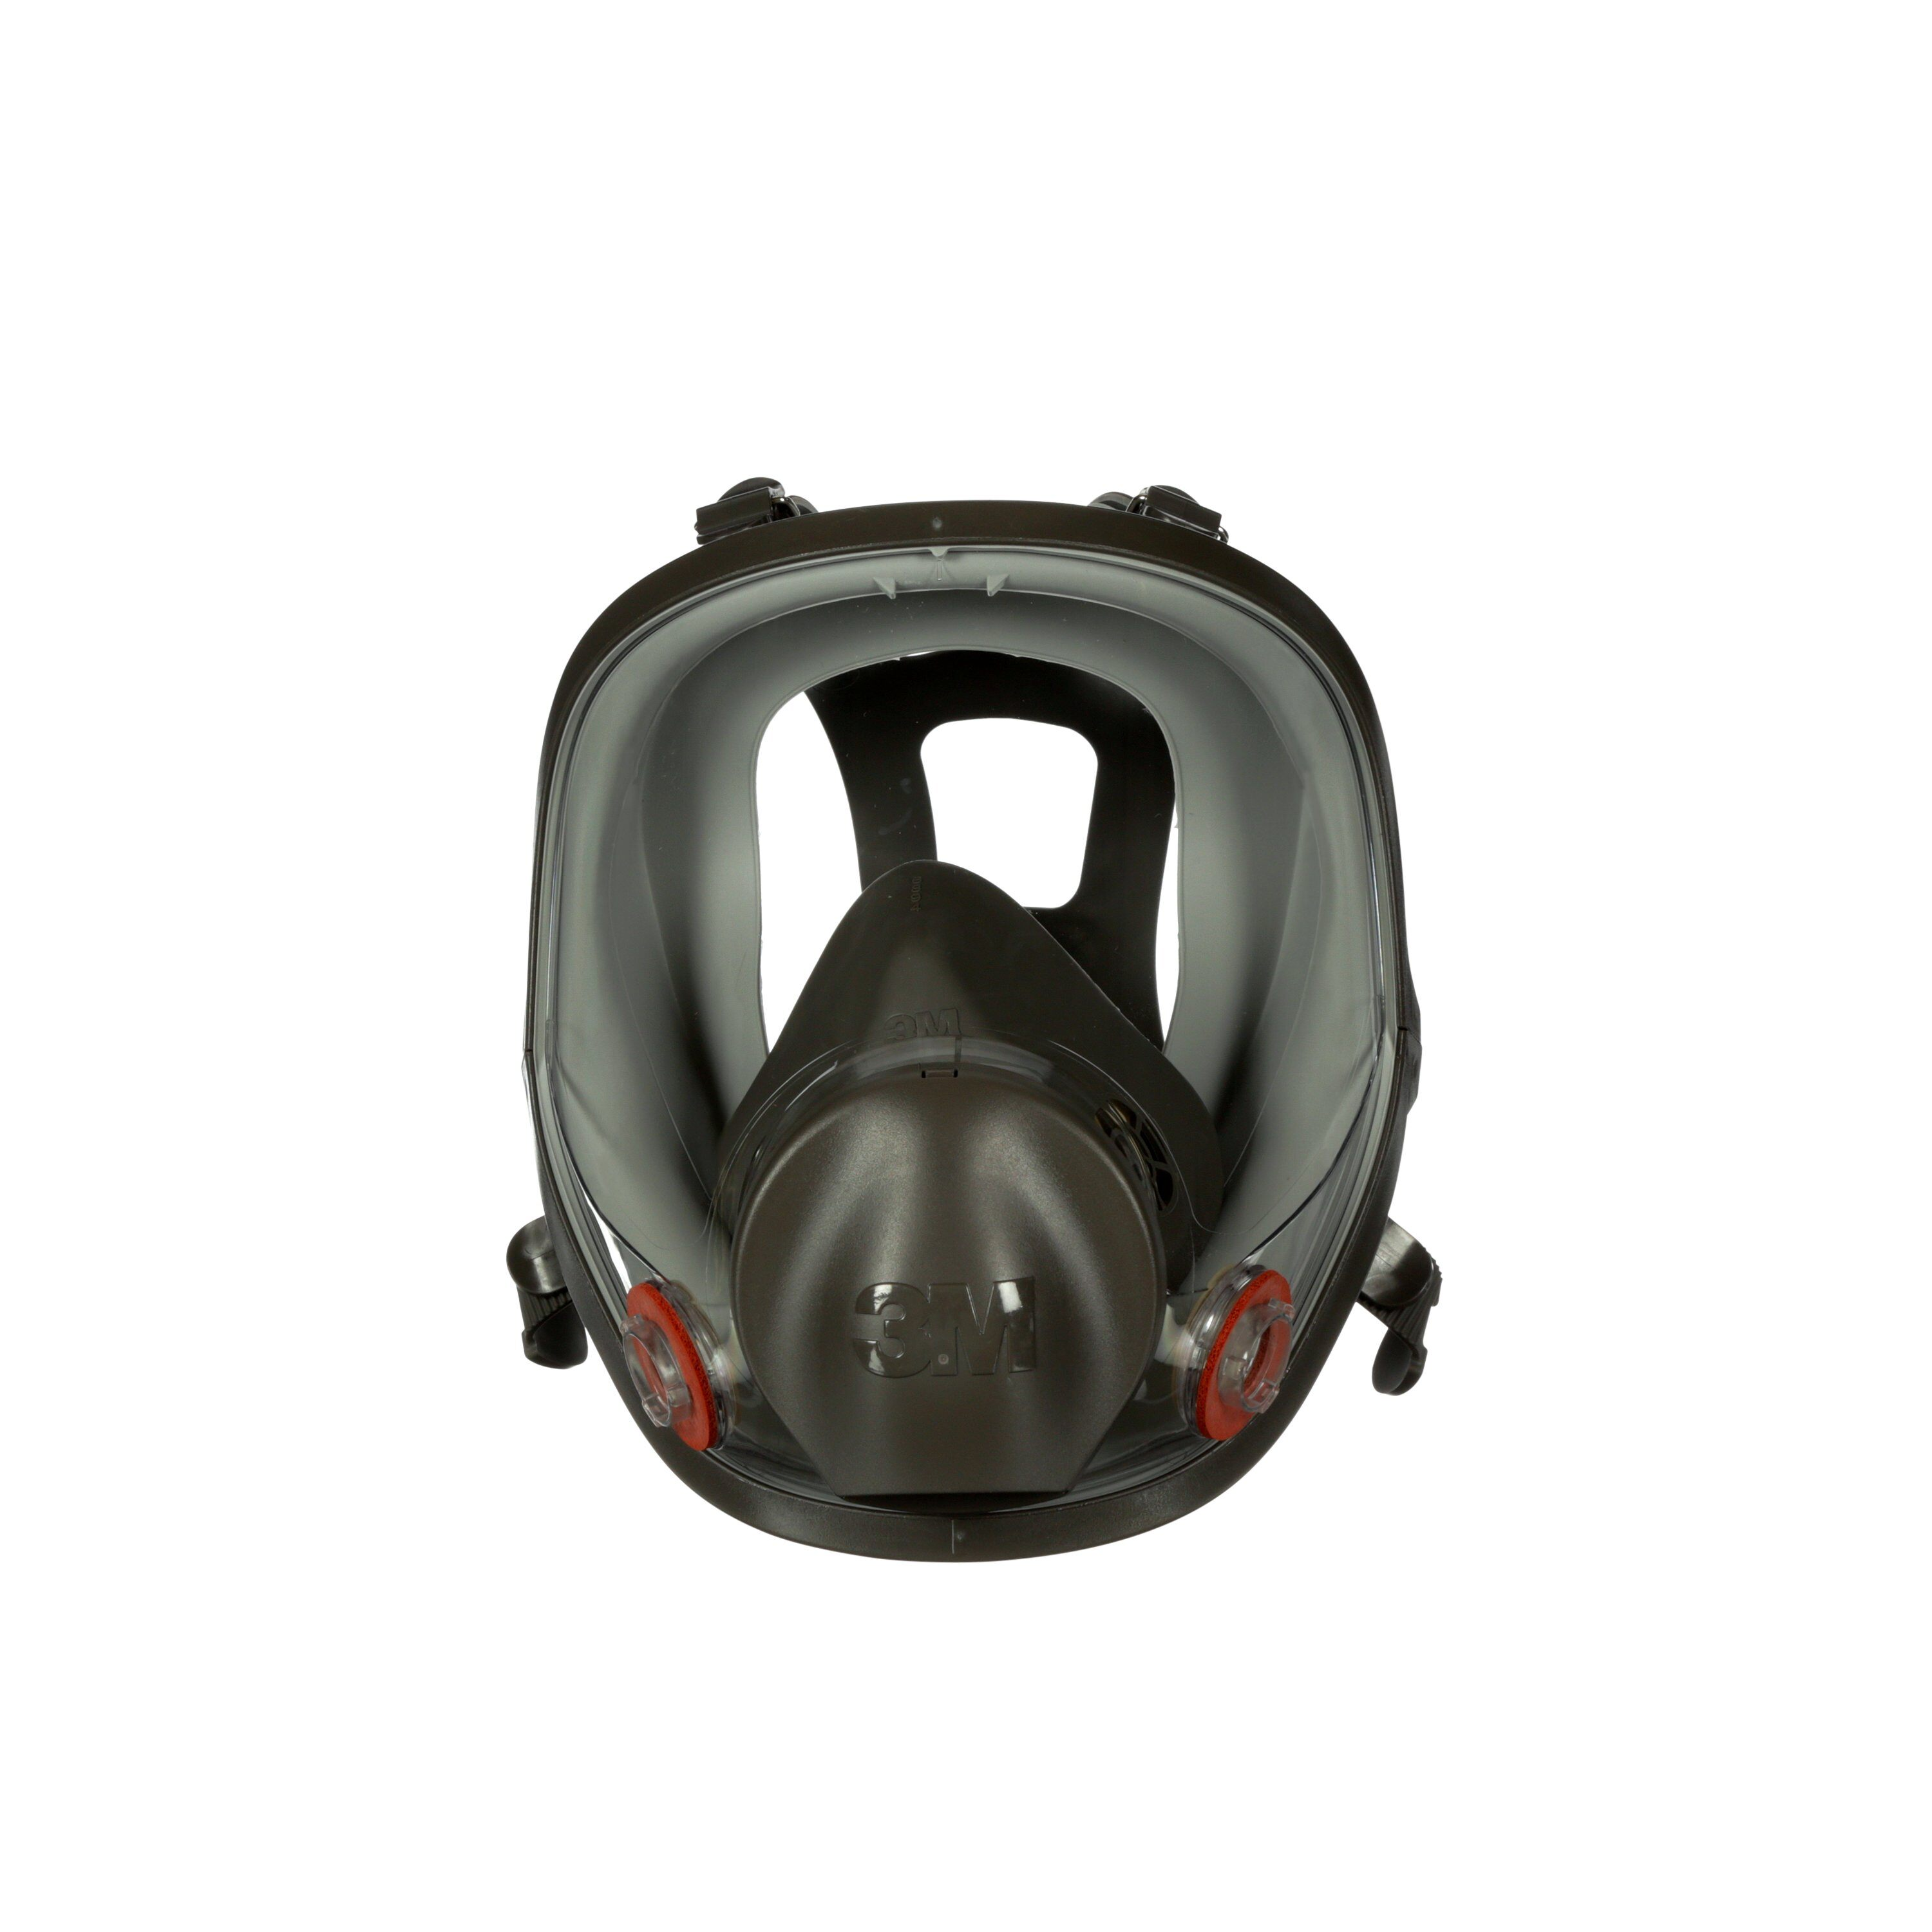 3M™ 6800 6000 Reusable Full Facepiece Respirator, M, Bayonet Connection